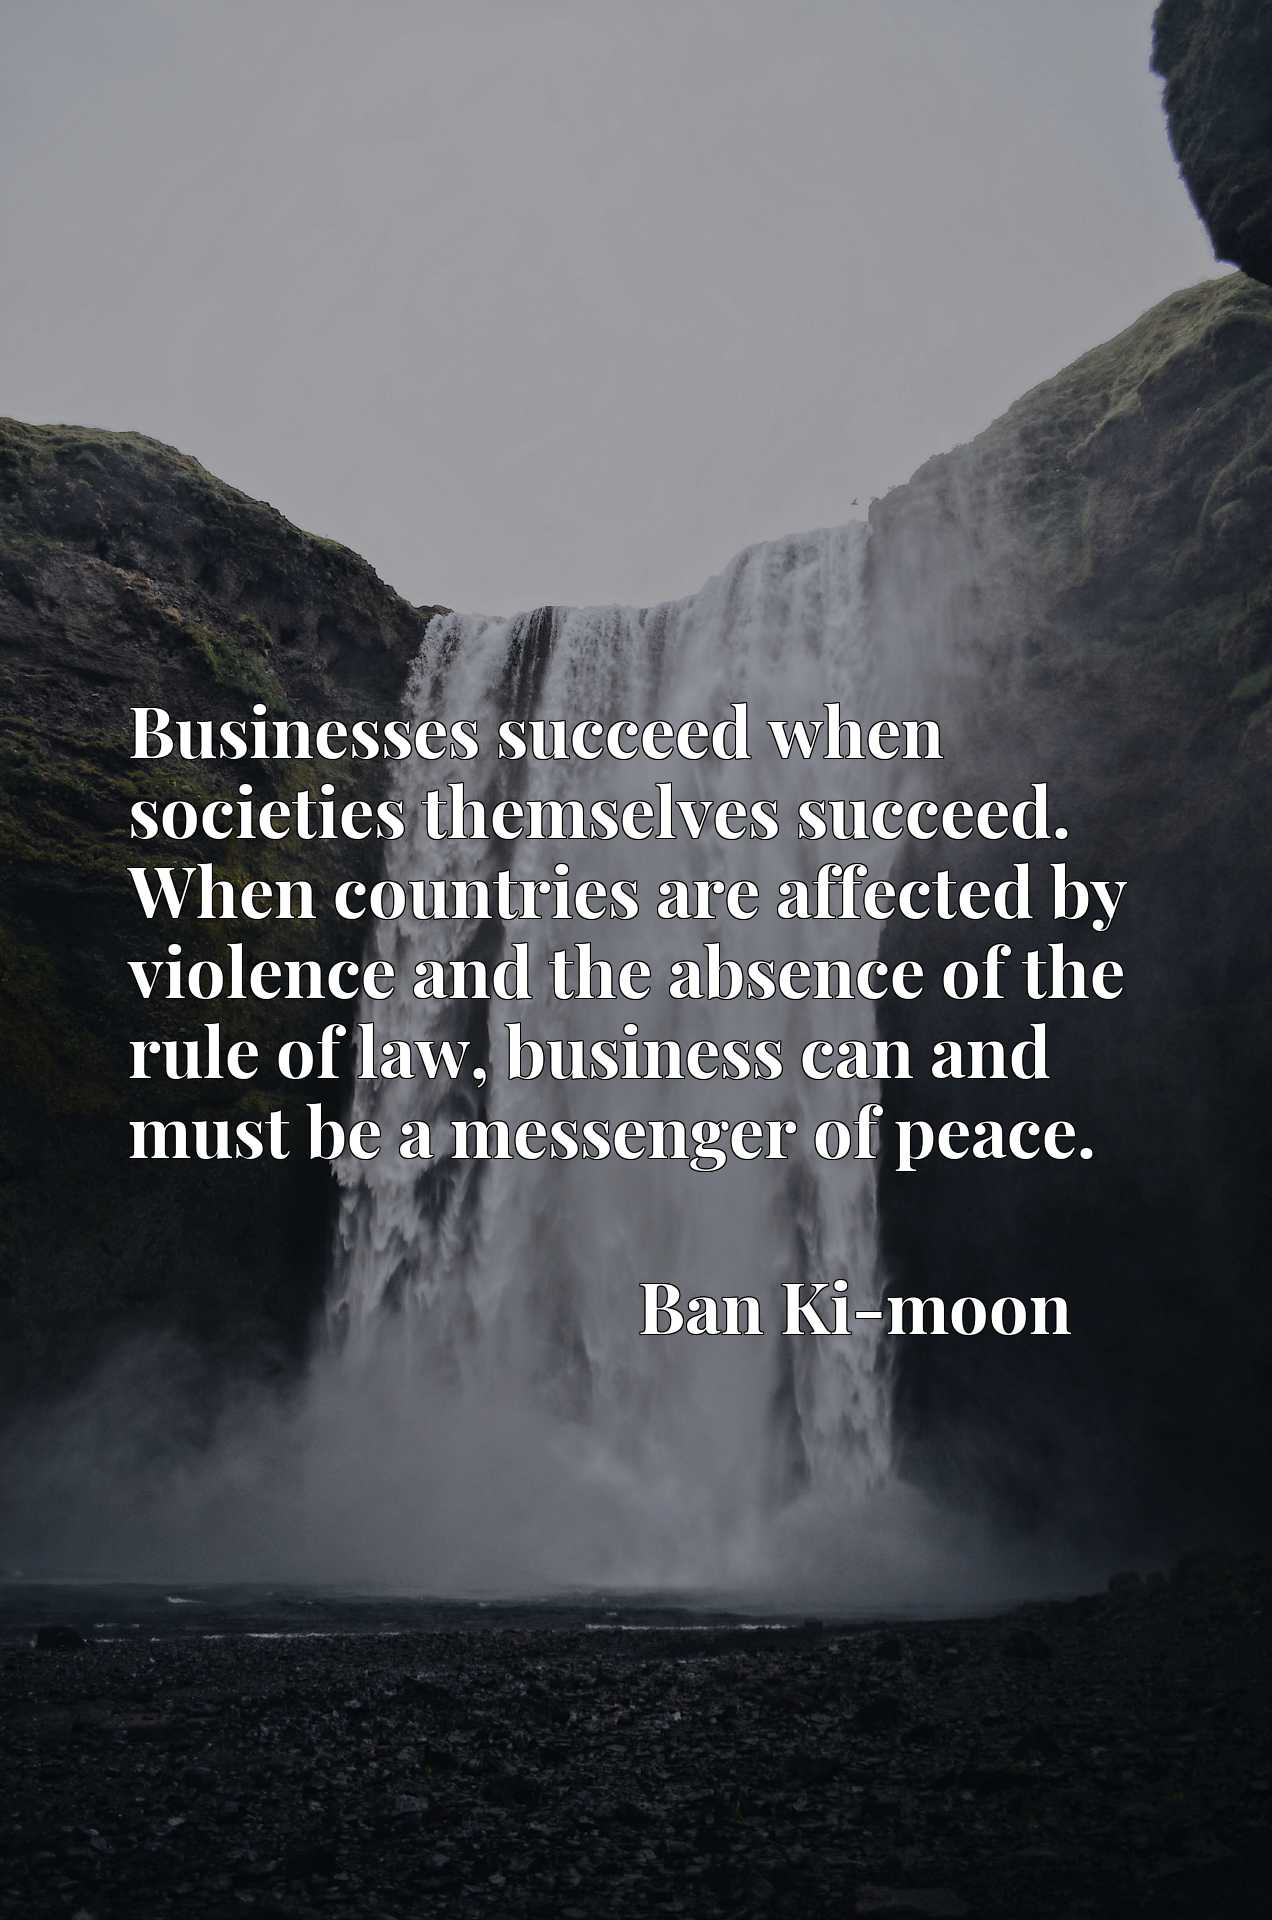 Businesses succeed when societies themselves succeed. When countries are affected by violence and the absence of the rule of law, business can and must be a messenger of peace.